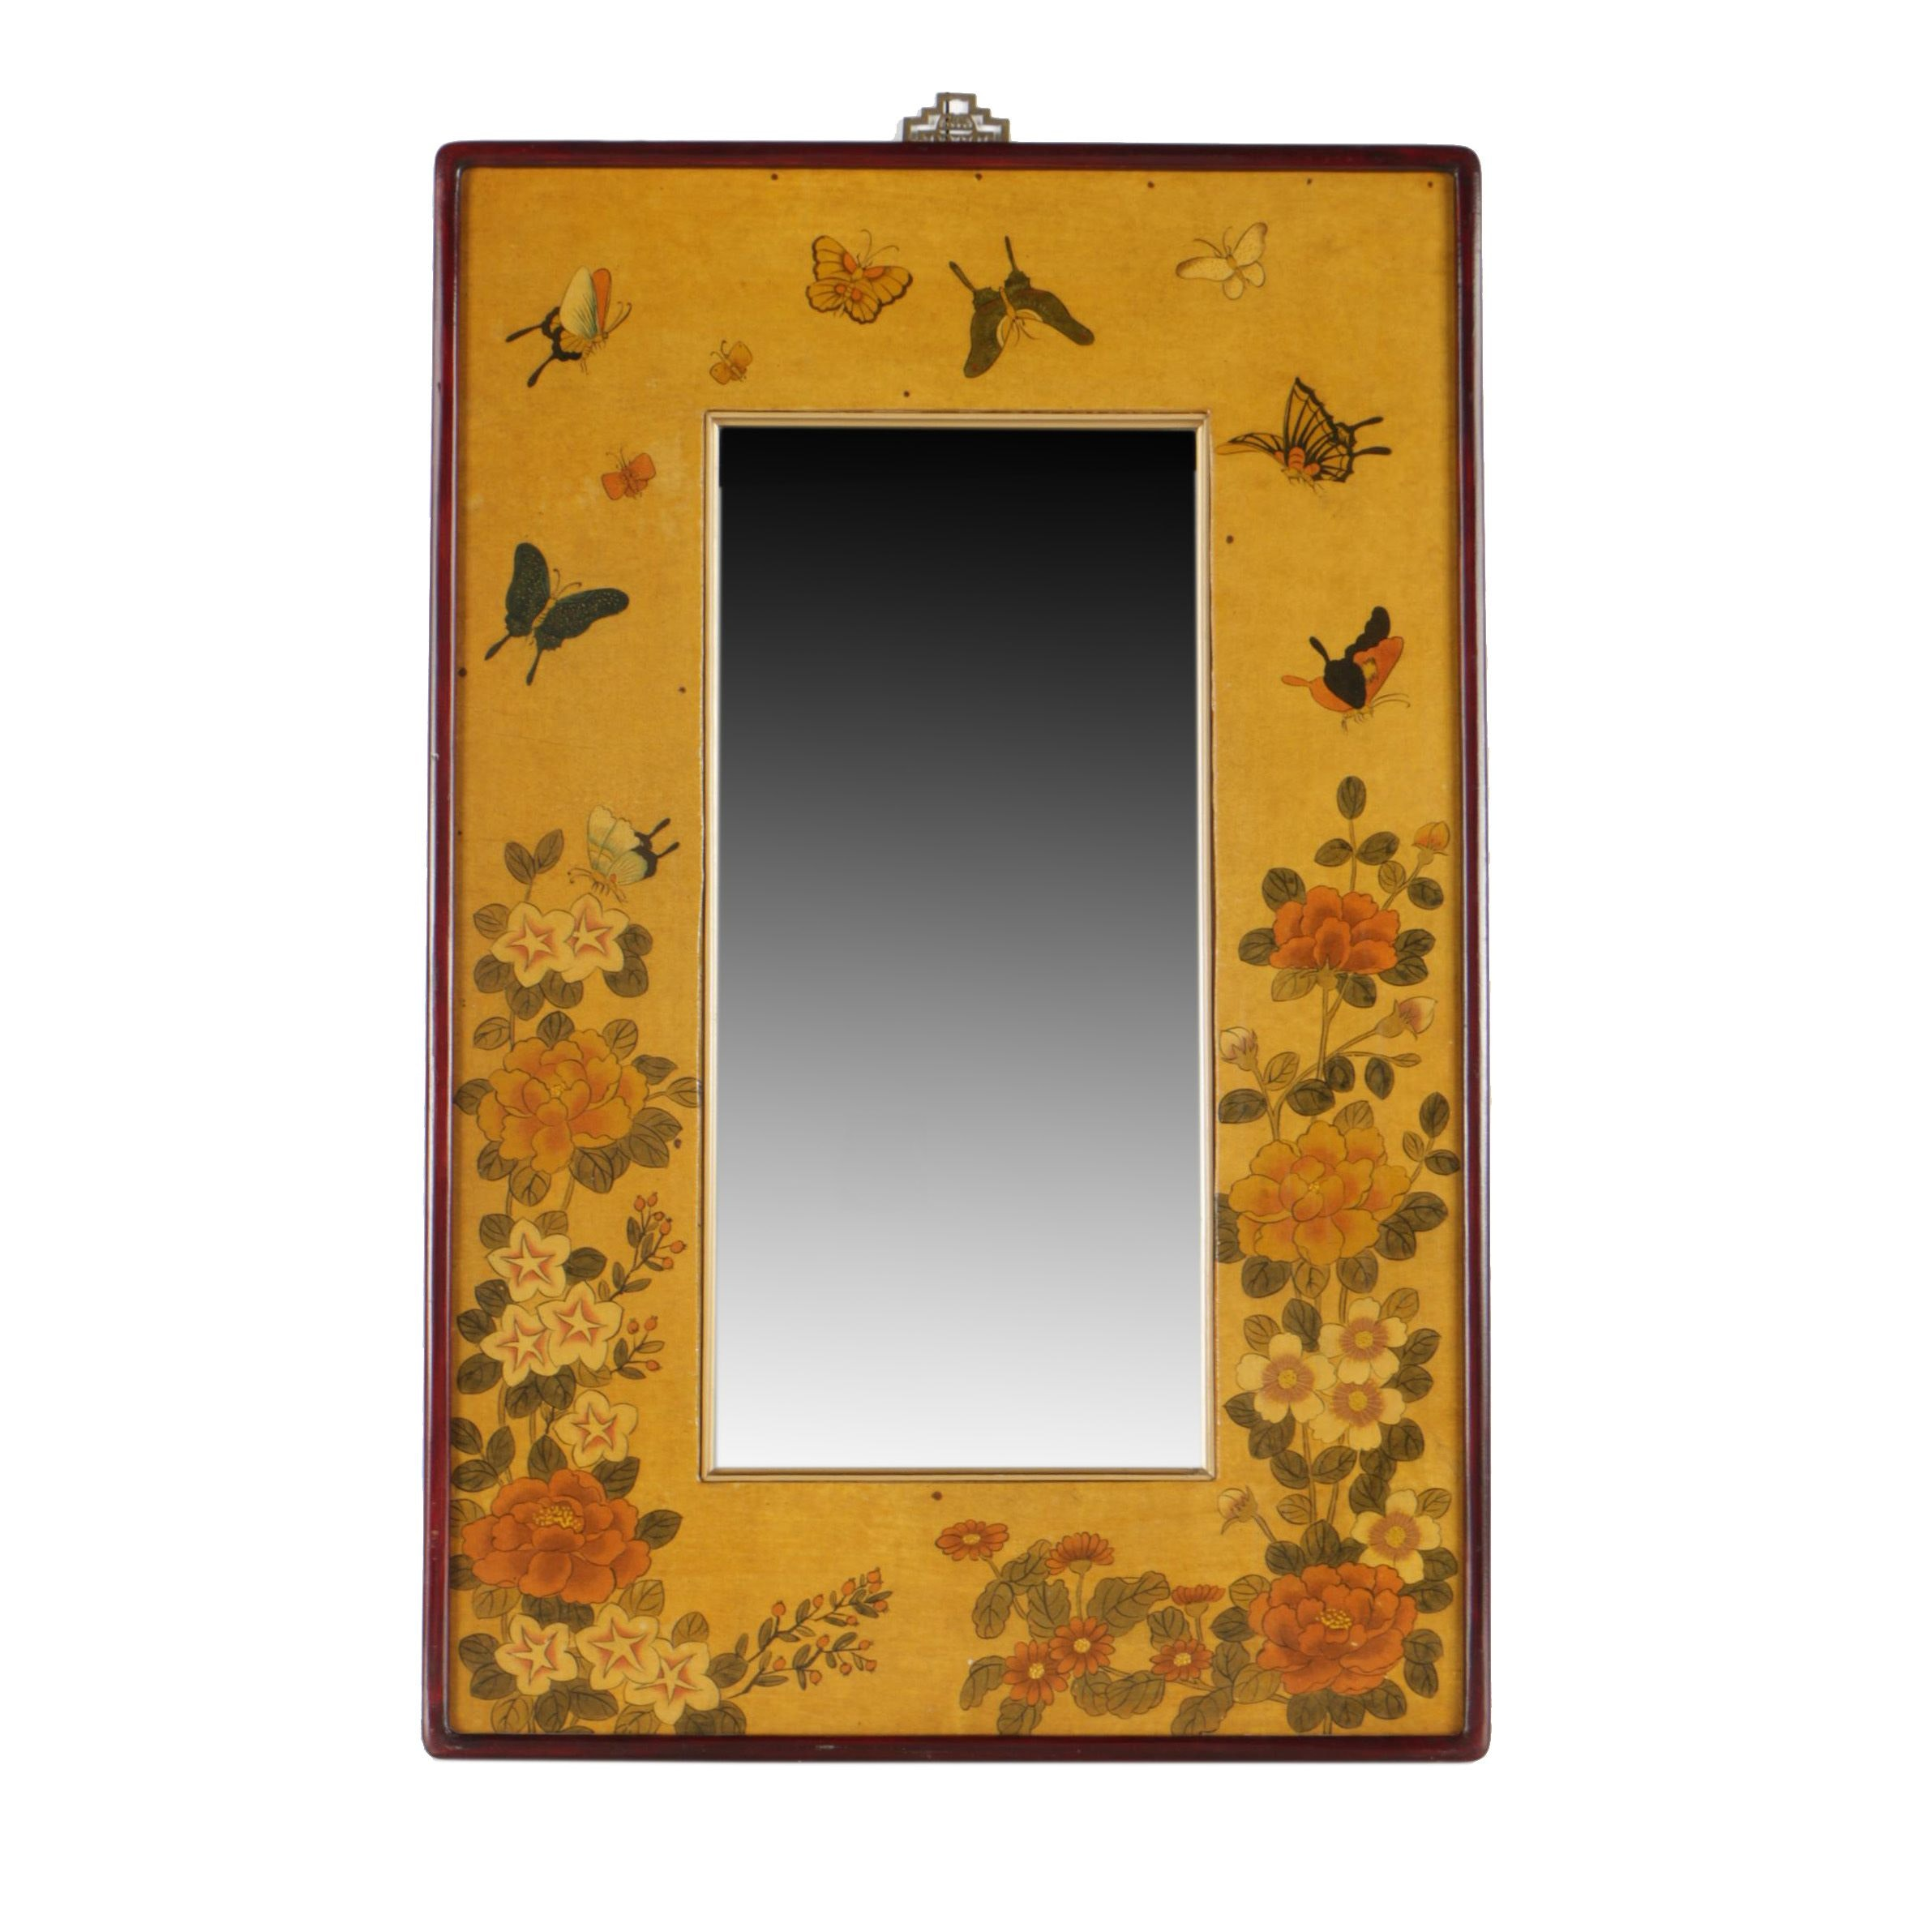 Decorative Floral and Butterfly Themed Wall Mirror